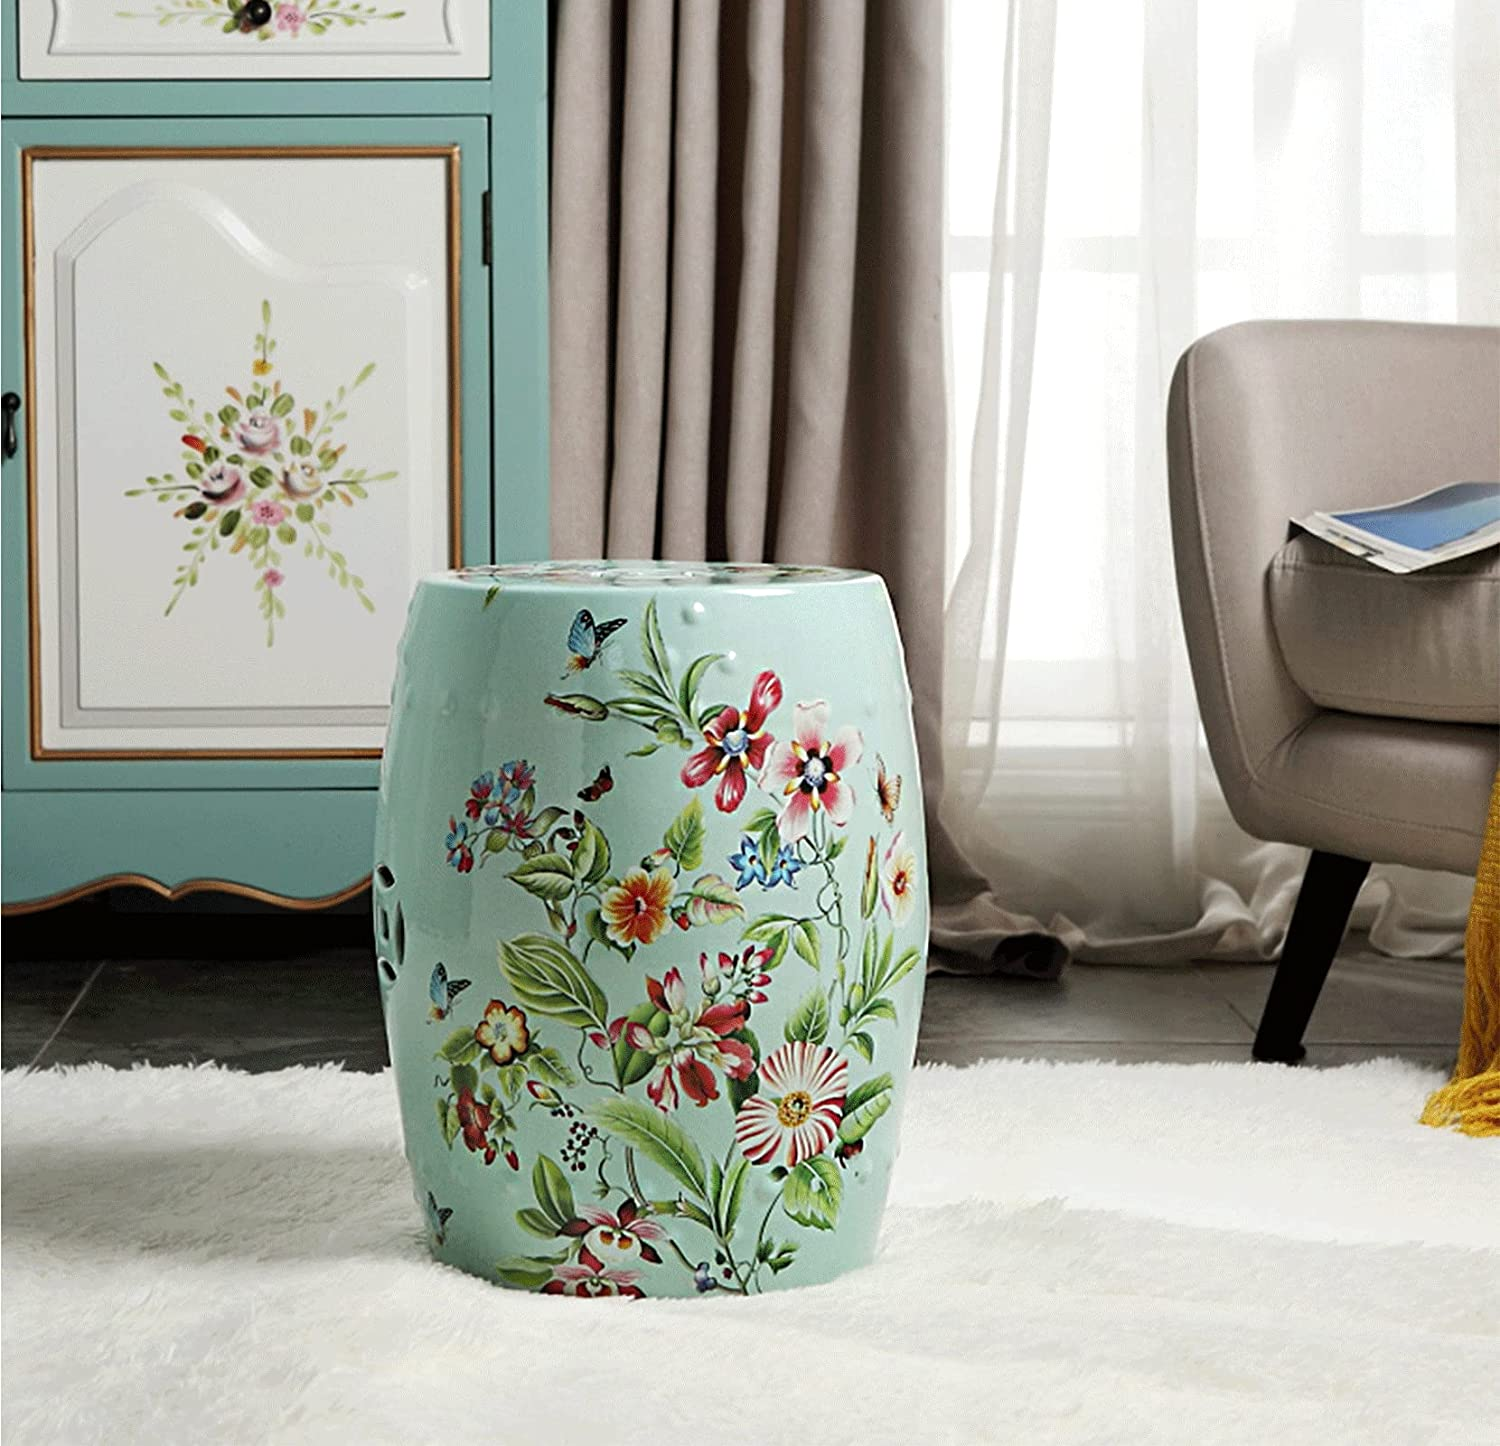 Garden Stool, Ceramic Glazed Craft, Easy to Clean New Chinese Style Living Room Porcelain Furniture, Max Load-Bearing 240 Lbs and Waterproof, L11.4 X W13.8 X H18.4